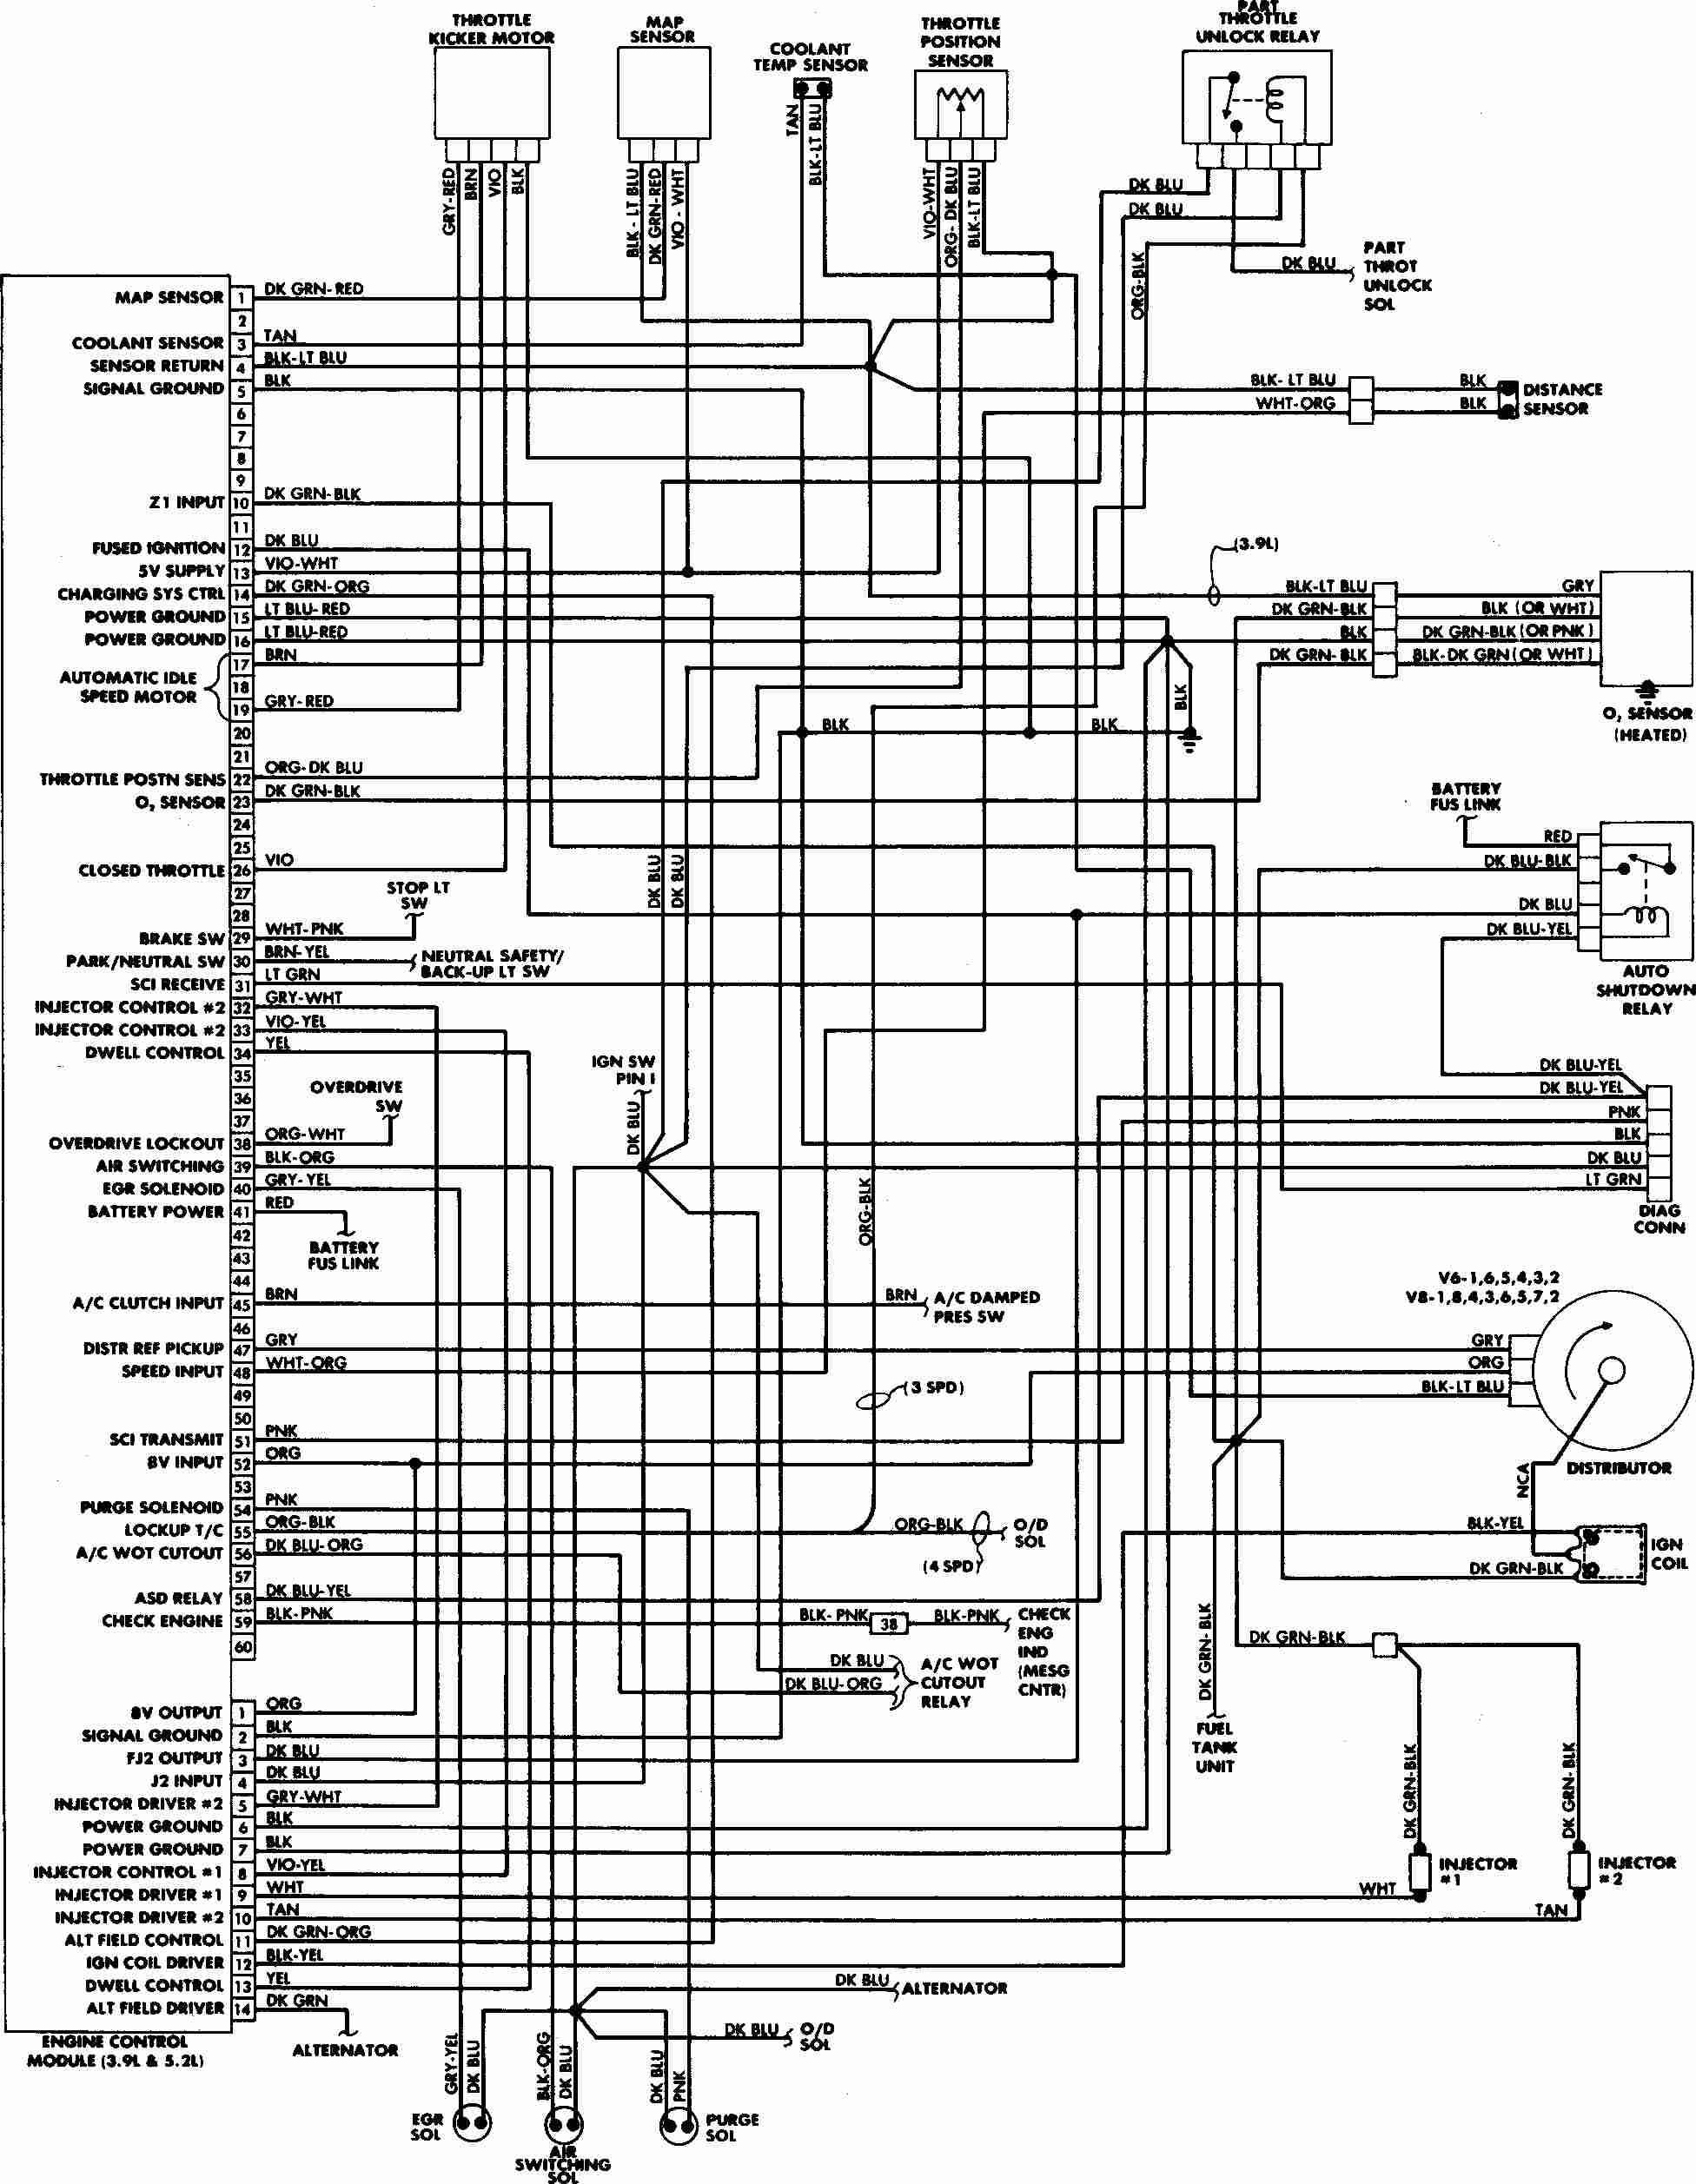 Chevy Silverado Tail Light Wiring Diagram